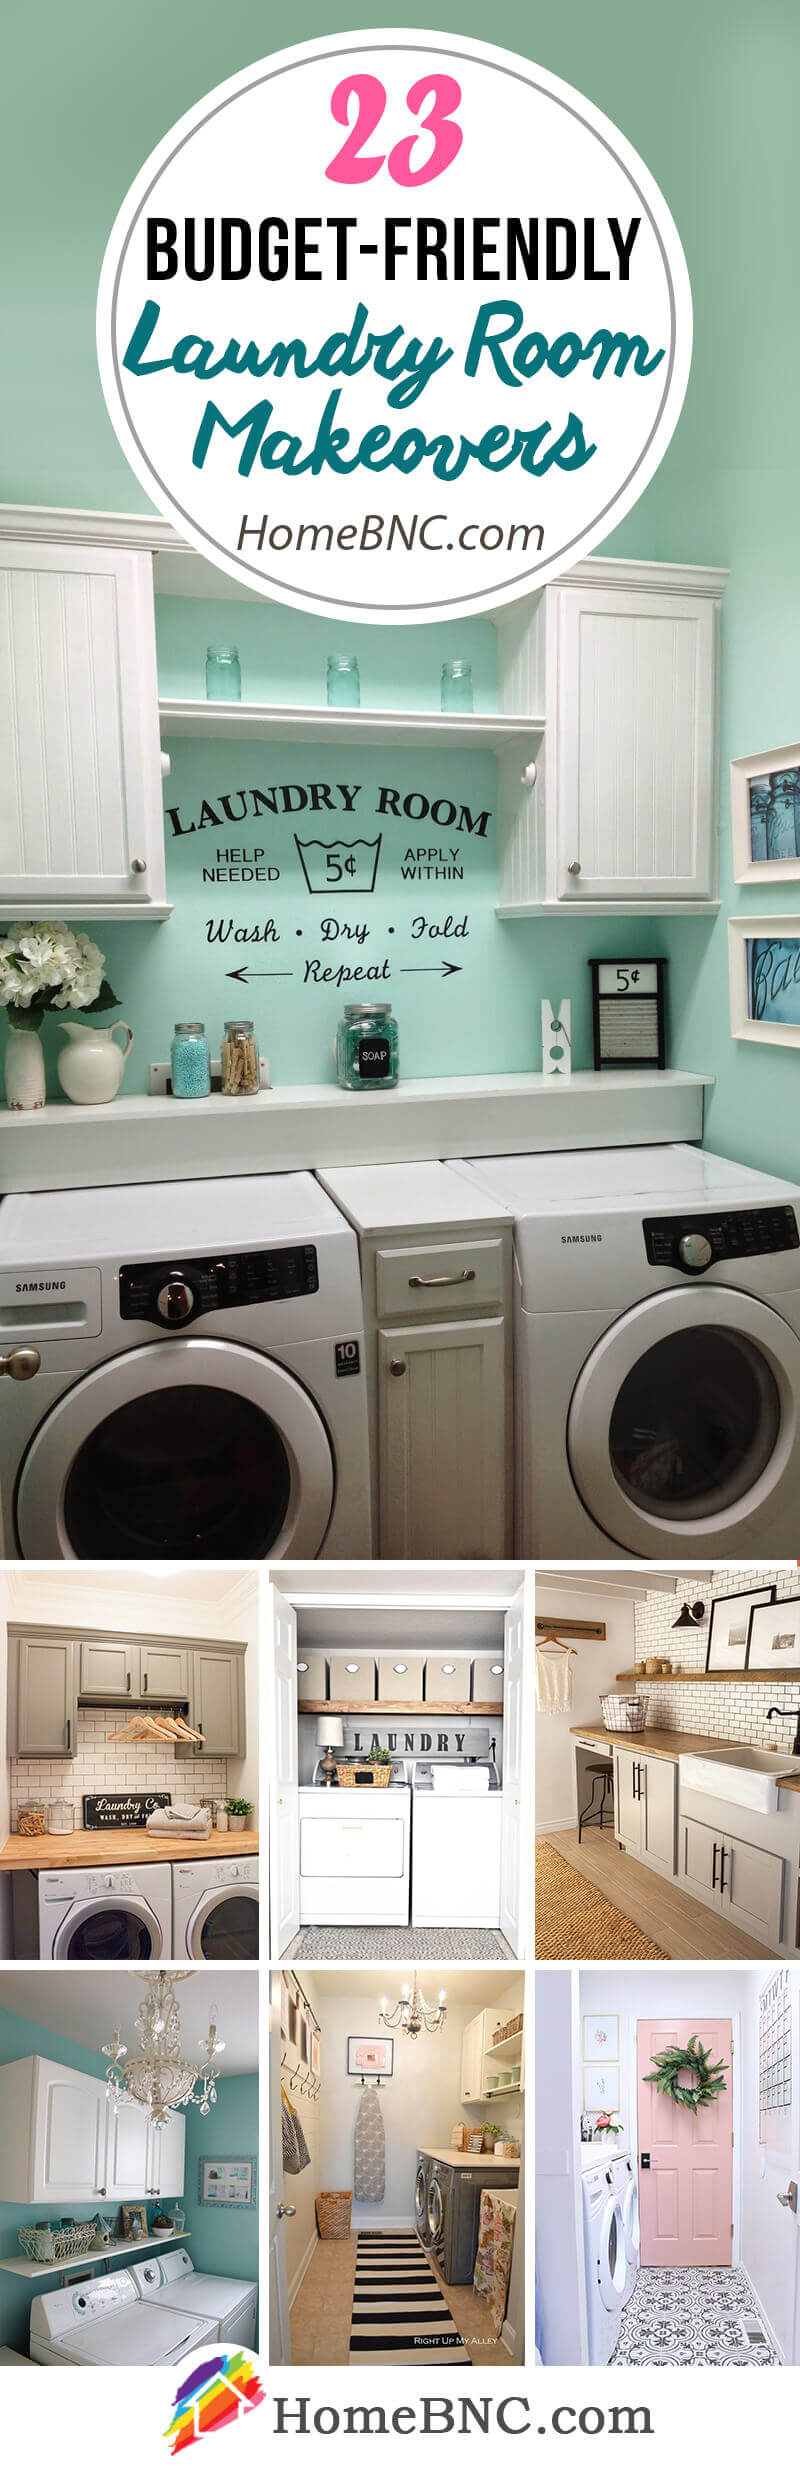 Budget Friendly Laundry Room Makeover Decor Ideas